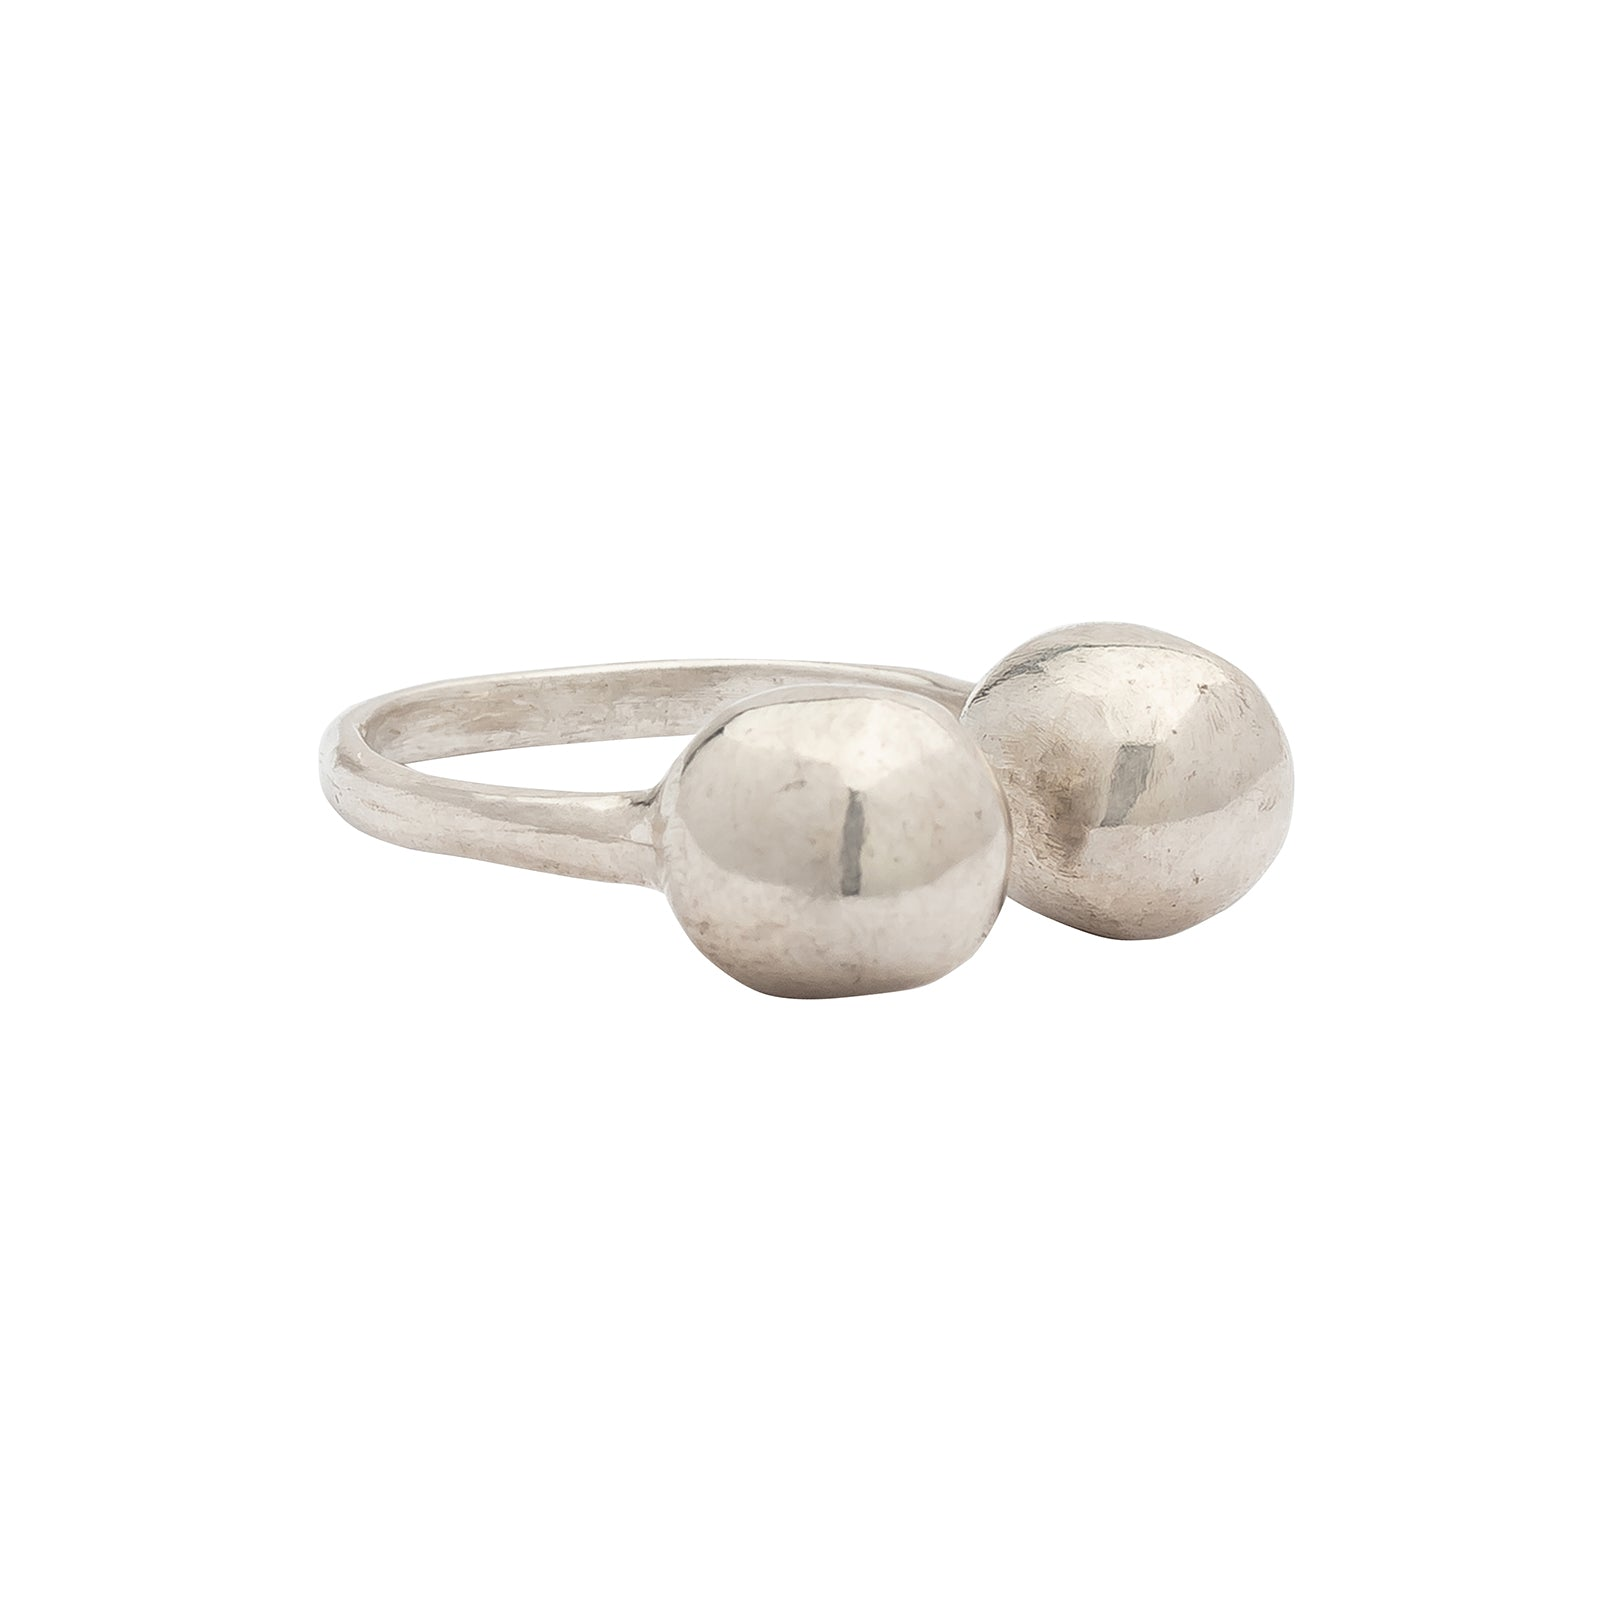 Ariana Boussard-Reifel Hypatia Ring - Silver - Rings - Broken English Jewelry